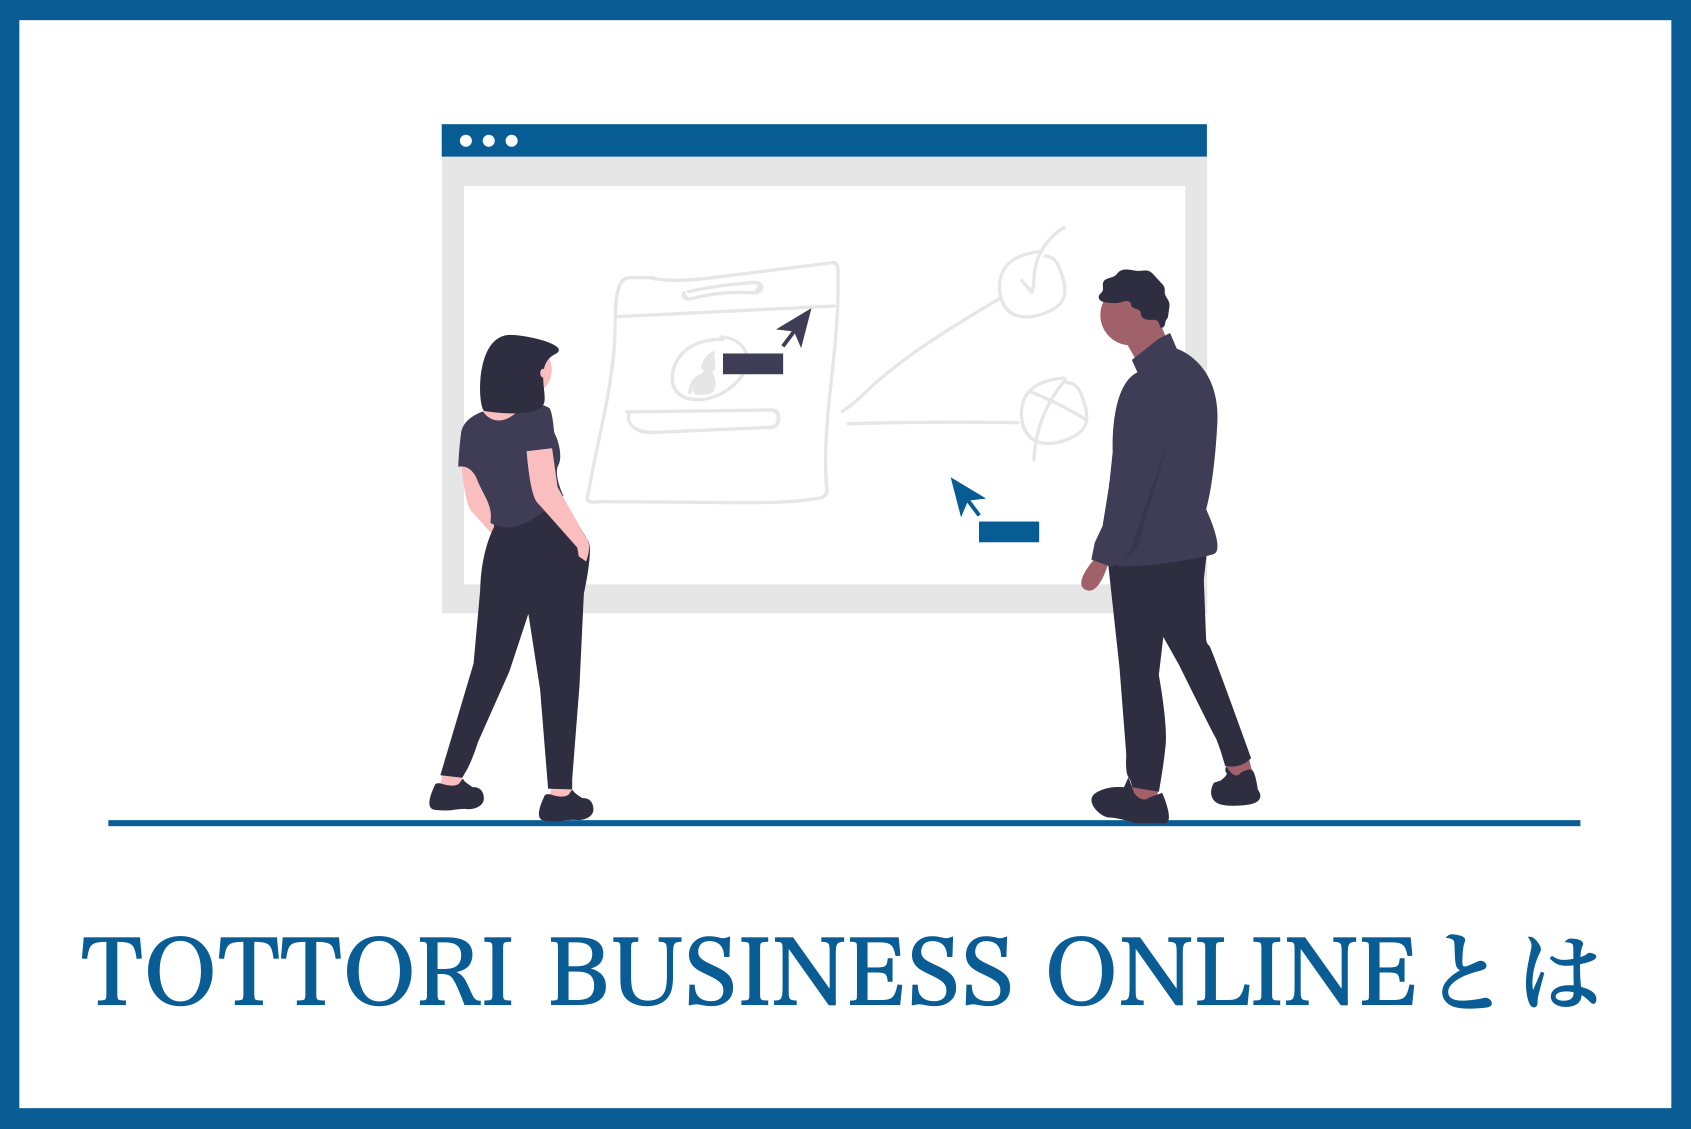 TOTTORI BUSINESS ONLINEとは